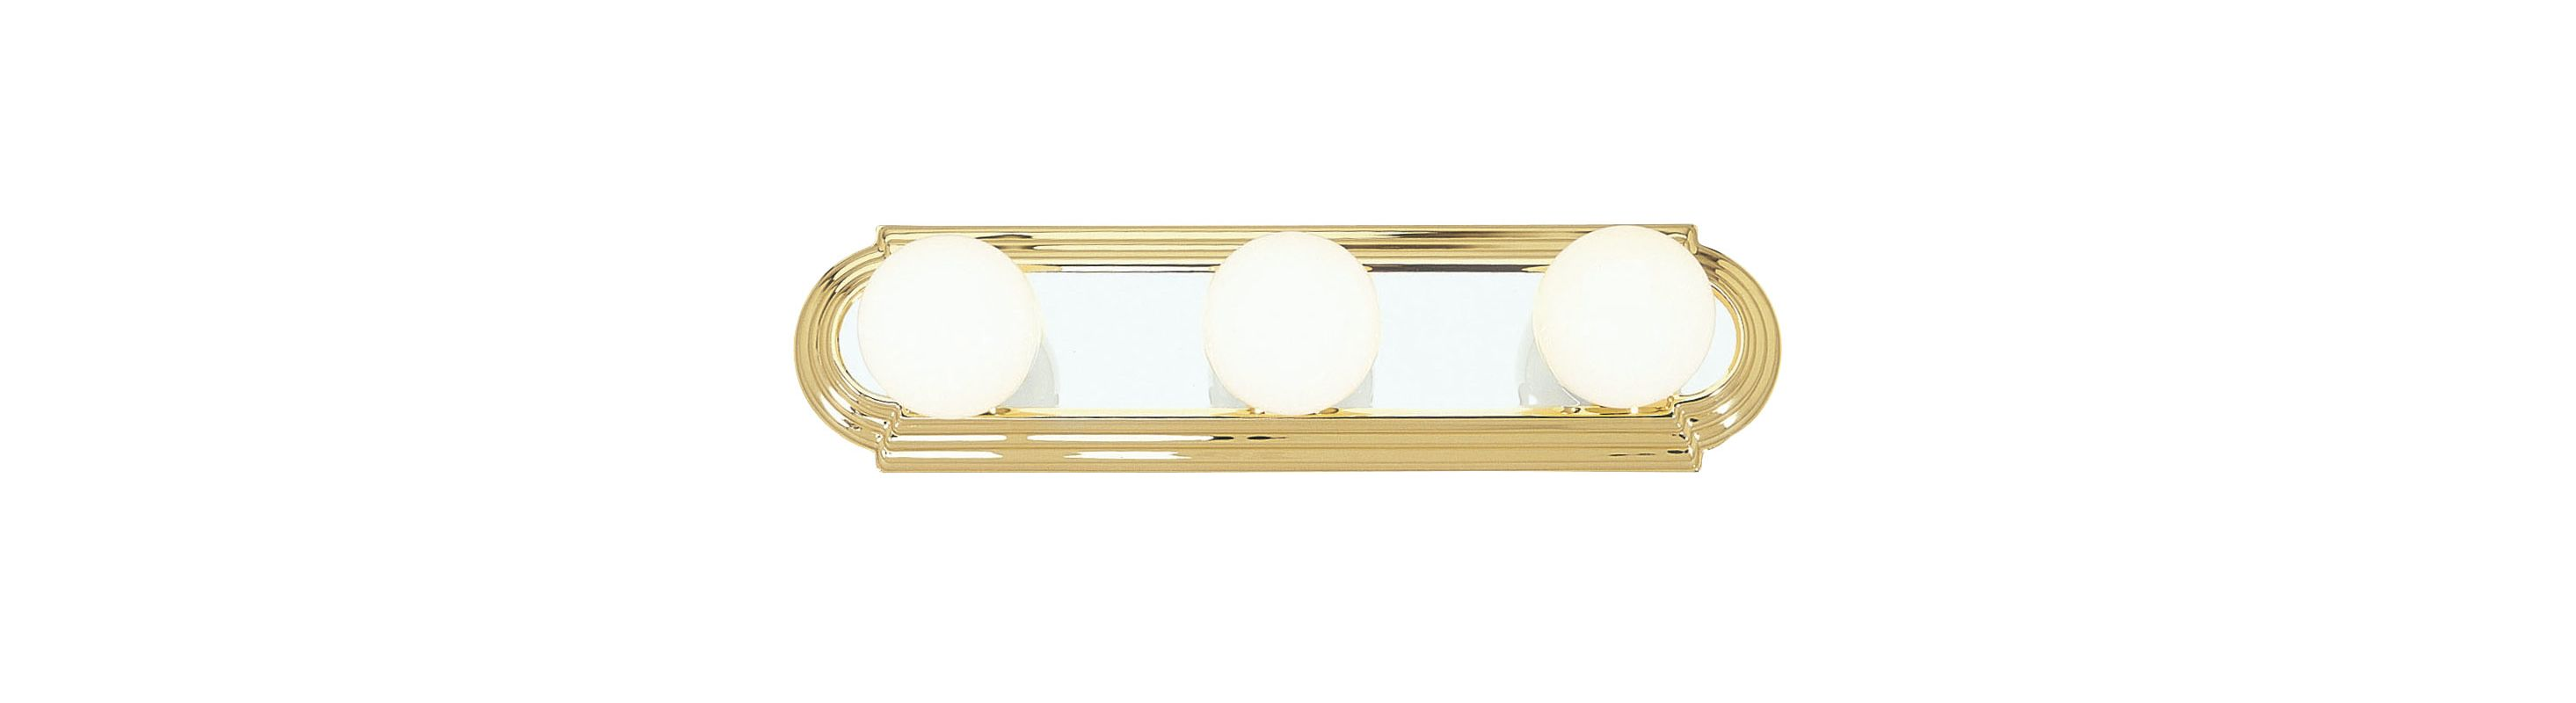 Livex Lighting 1143 Bath Basics 3 Light Bathroom Vanity Strip Polished